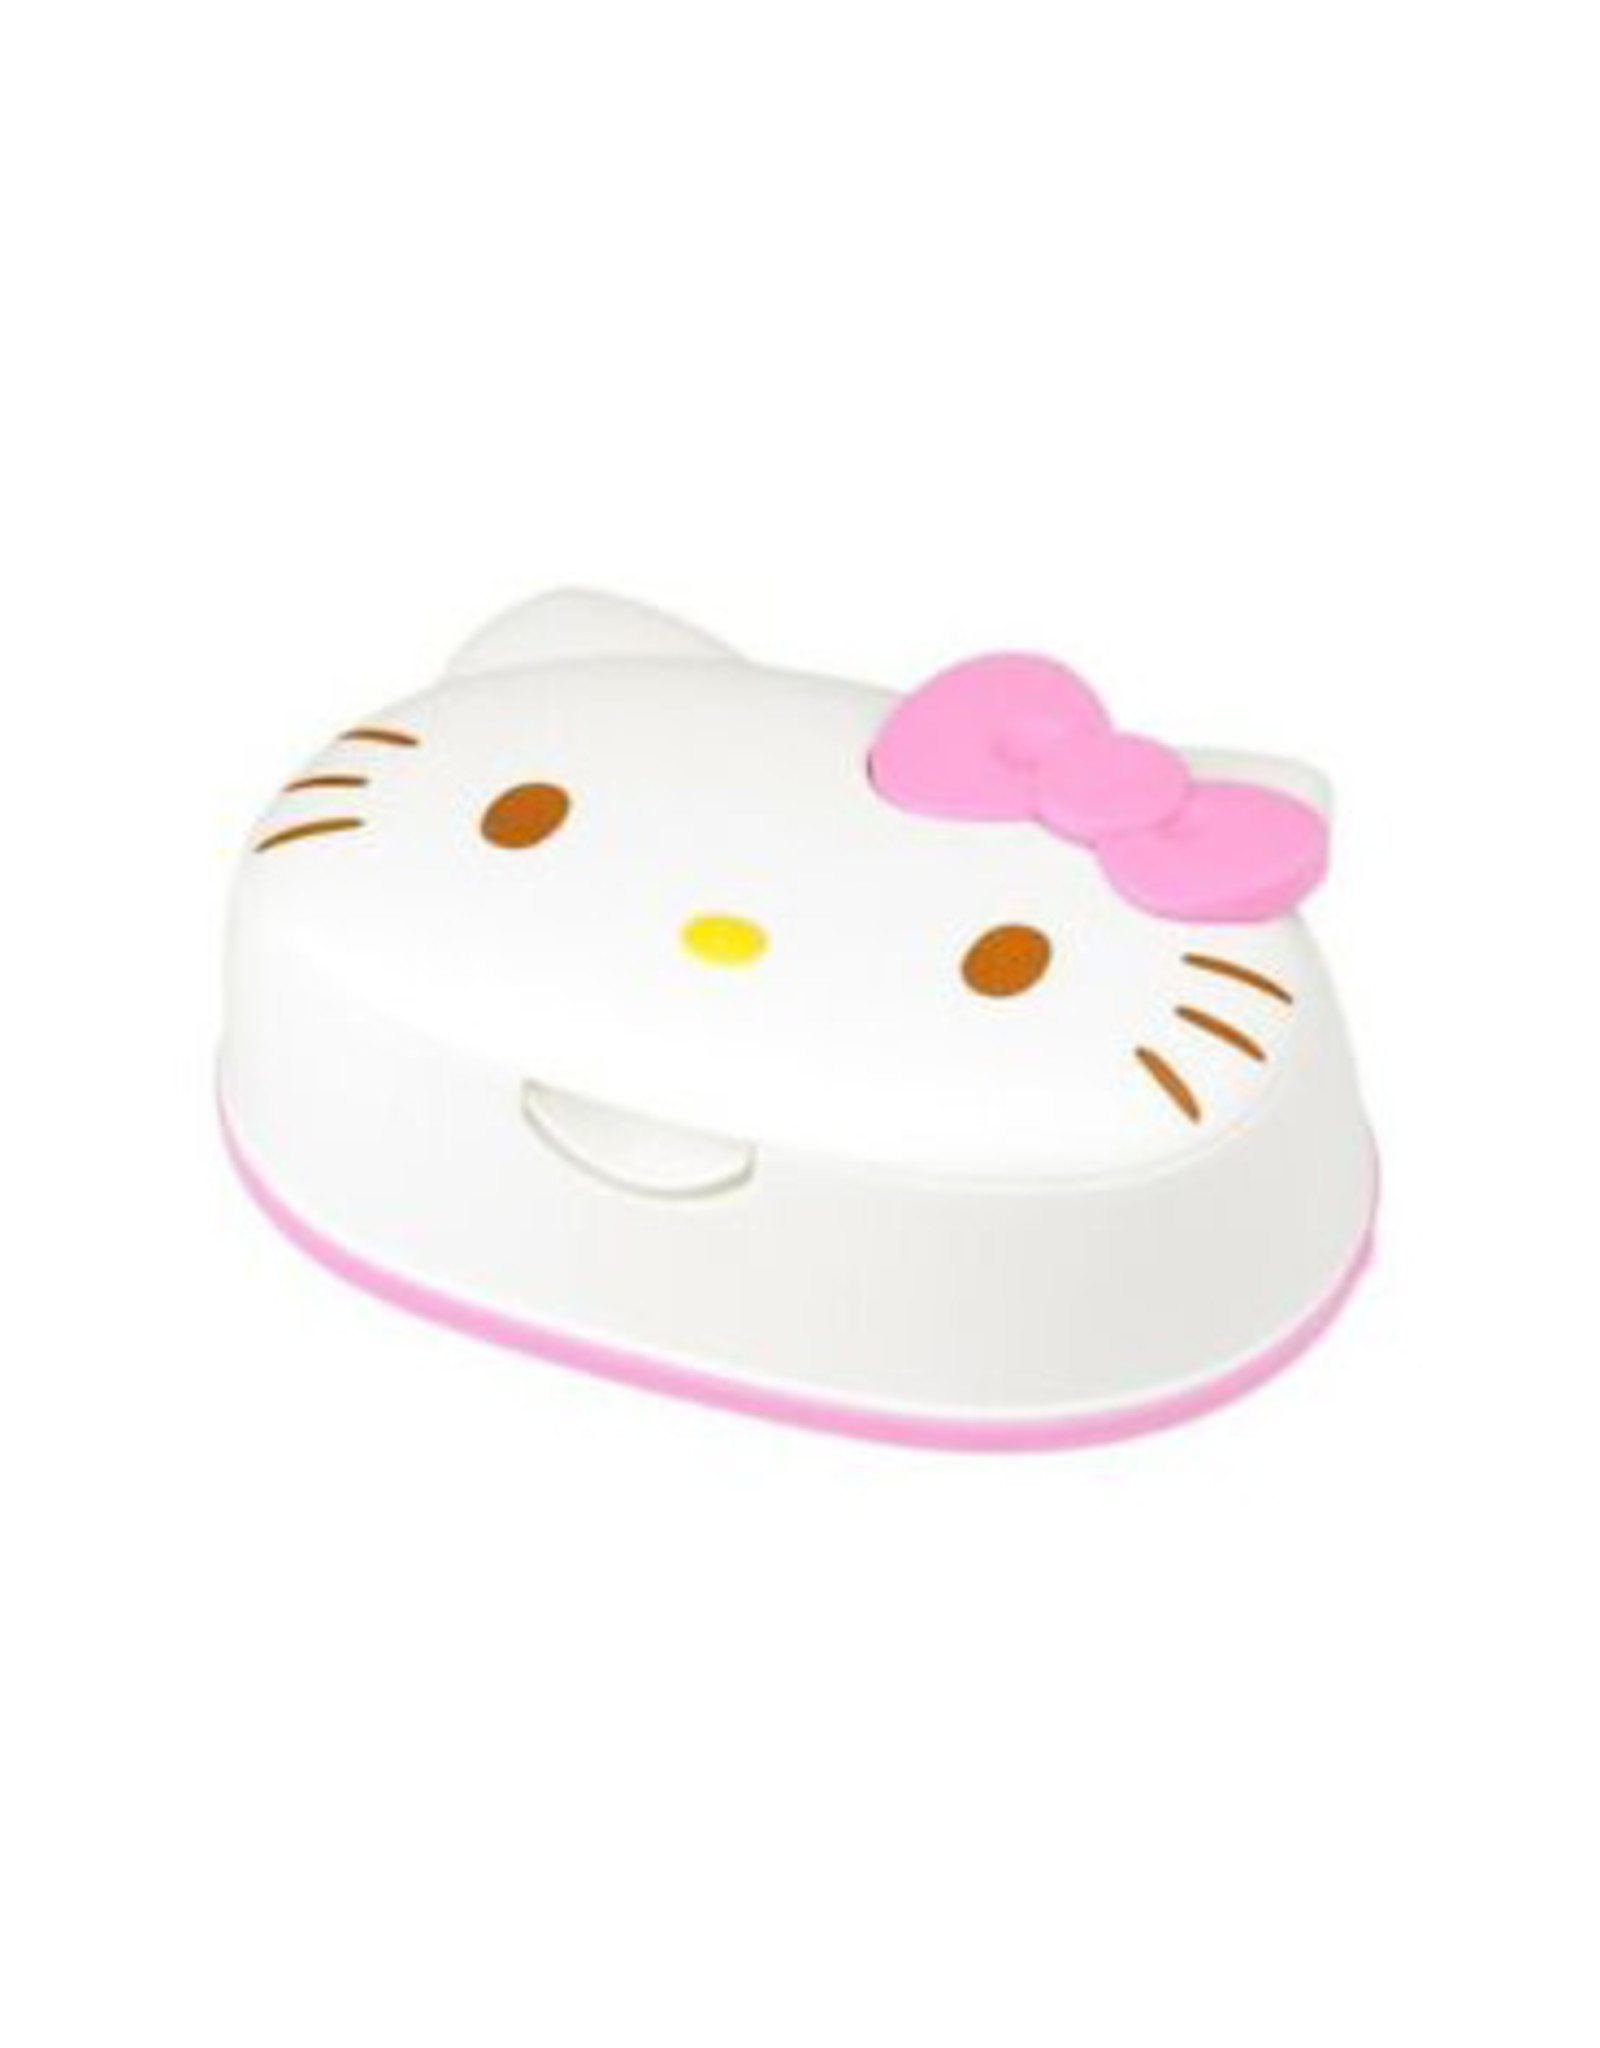 LEC LEC Hello Kitty 99.9% Pure Water Wet Tissue With Case